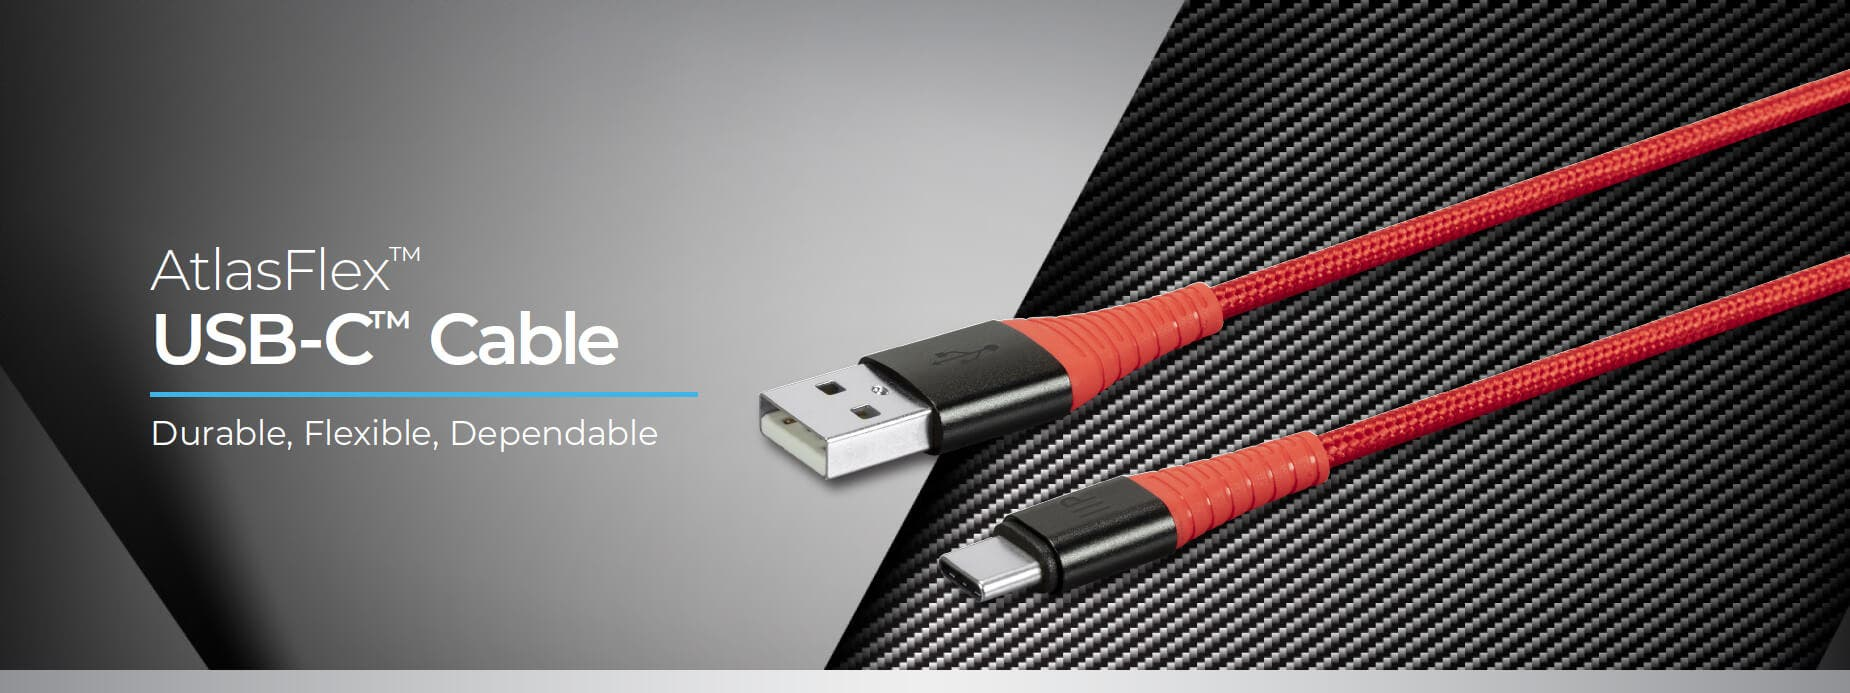 AtlasFlex USB-C Cable